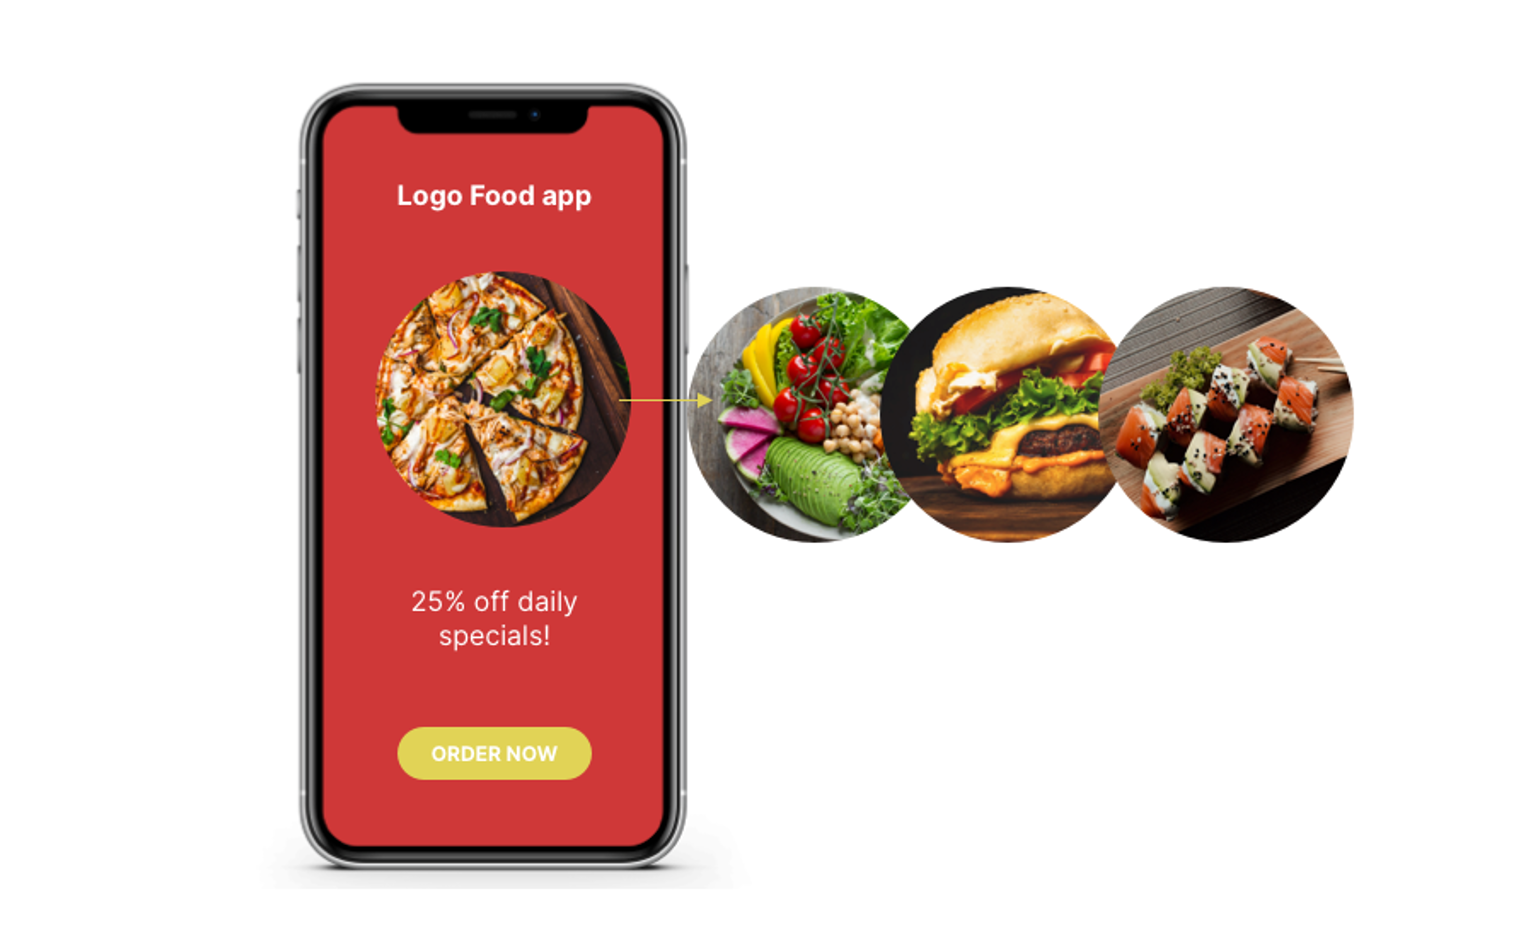 Dynamic mobile ads